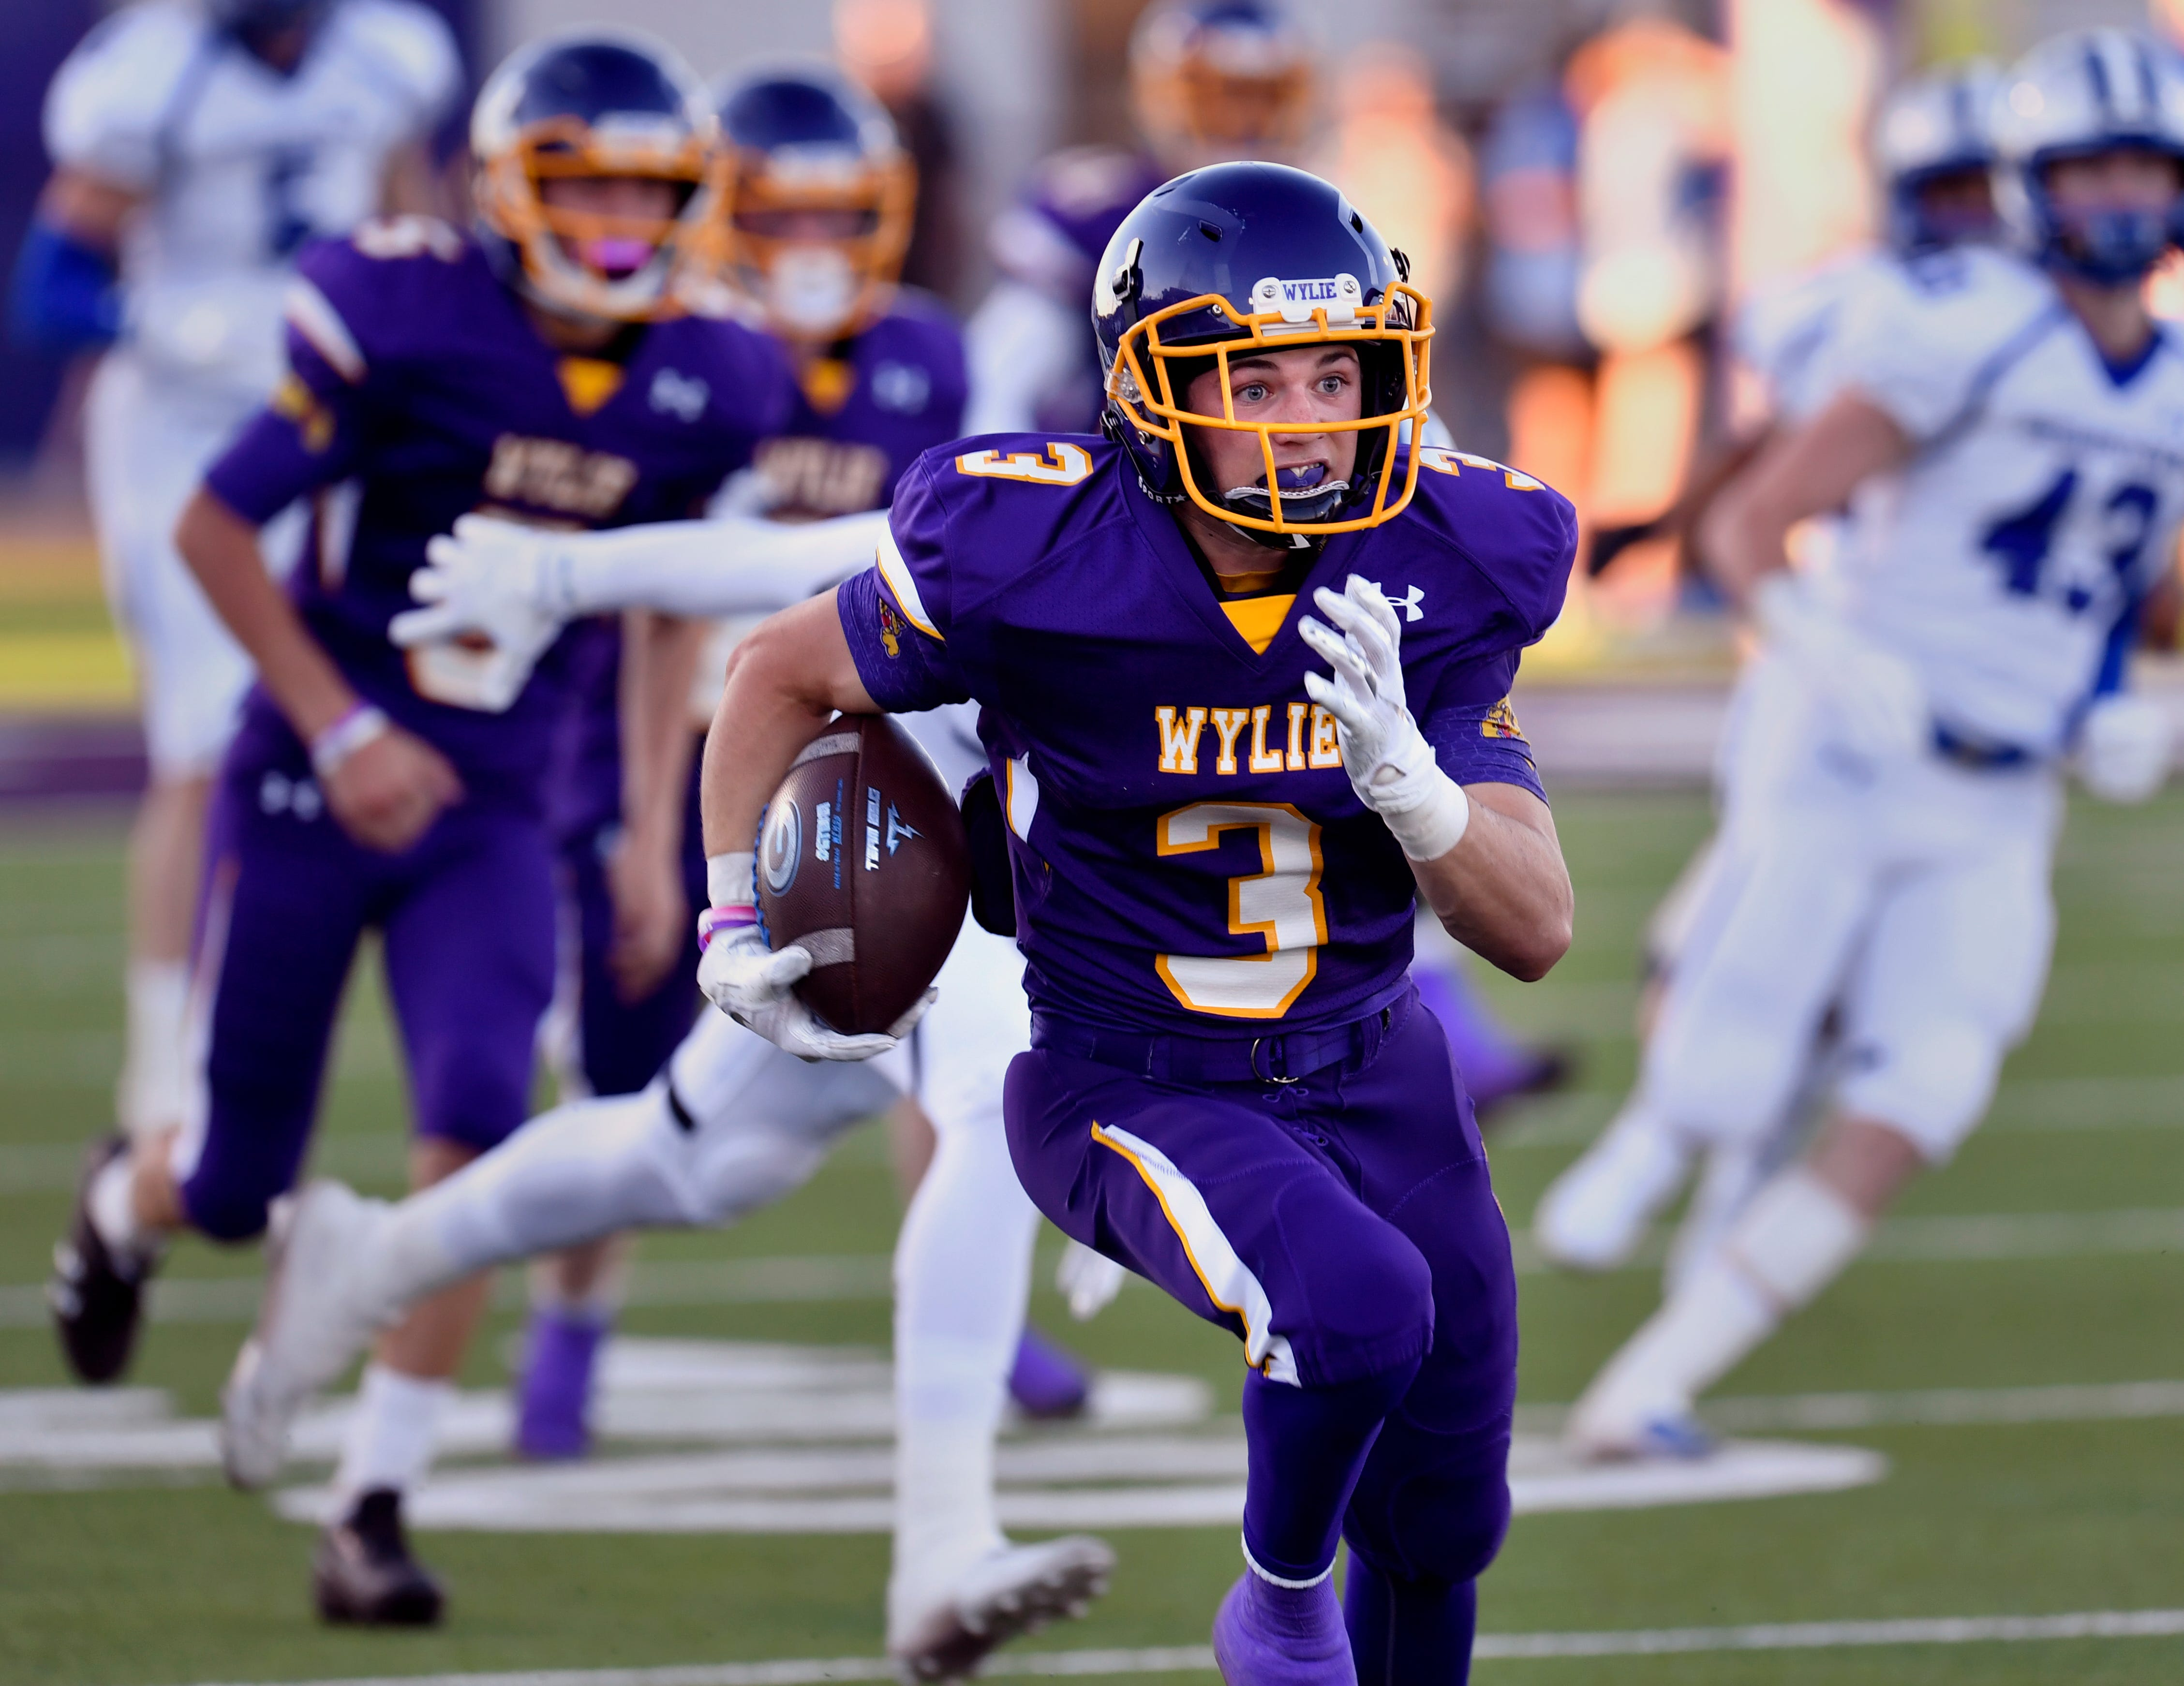 Jaden Speegle's 97-yard kickoff return for a touchdown was Wylie's lone bright spot in its season-opening loss to Georgetown. The Bulldogs are now 0-4 heading to Brownwood on Friday.